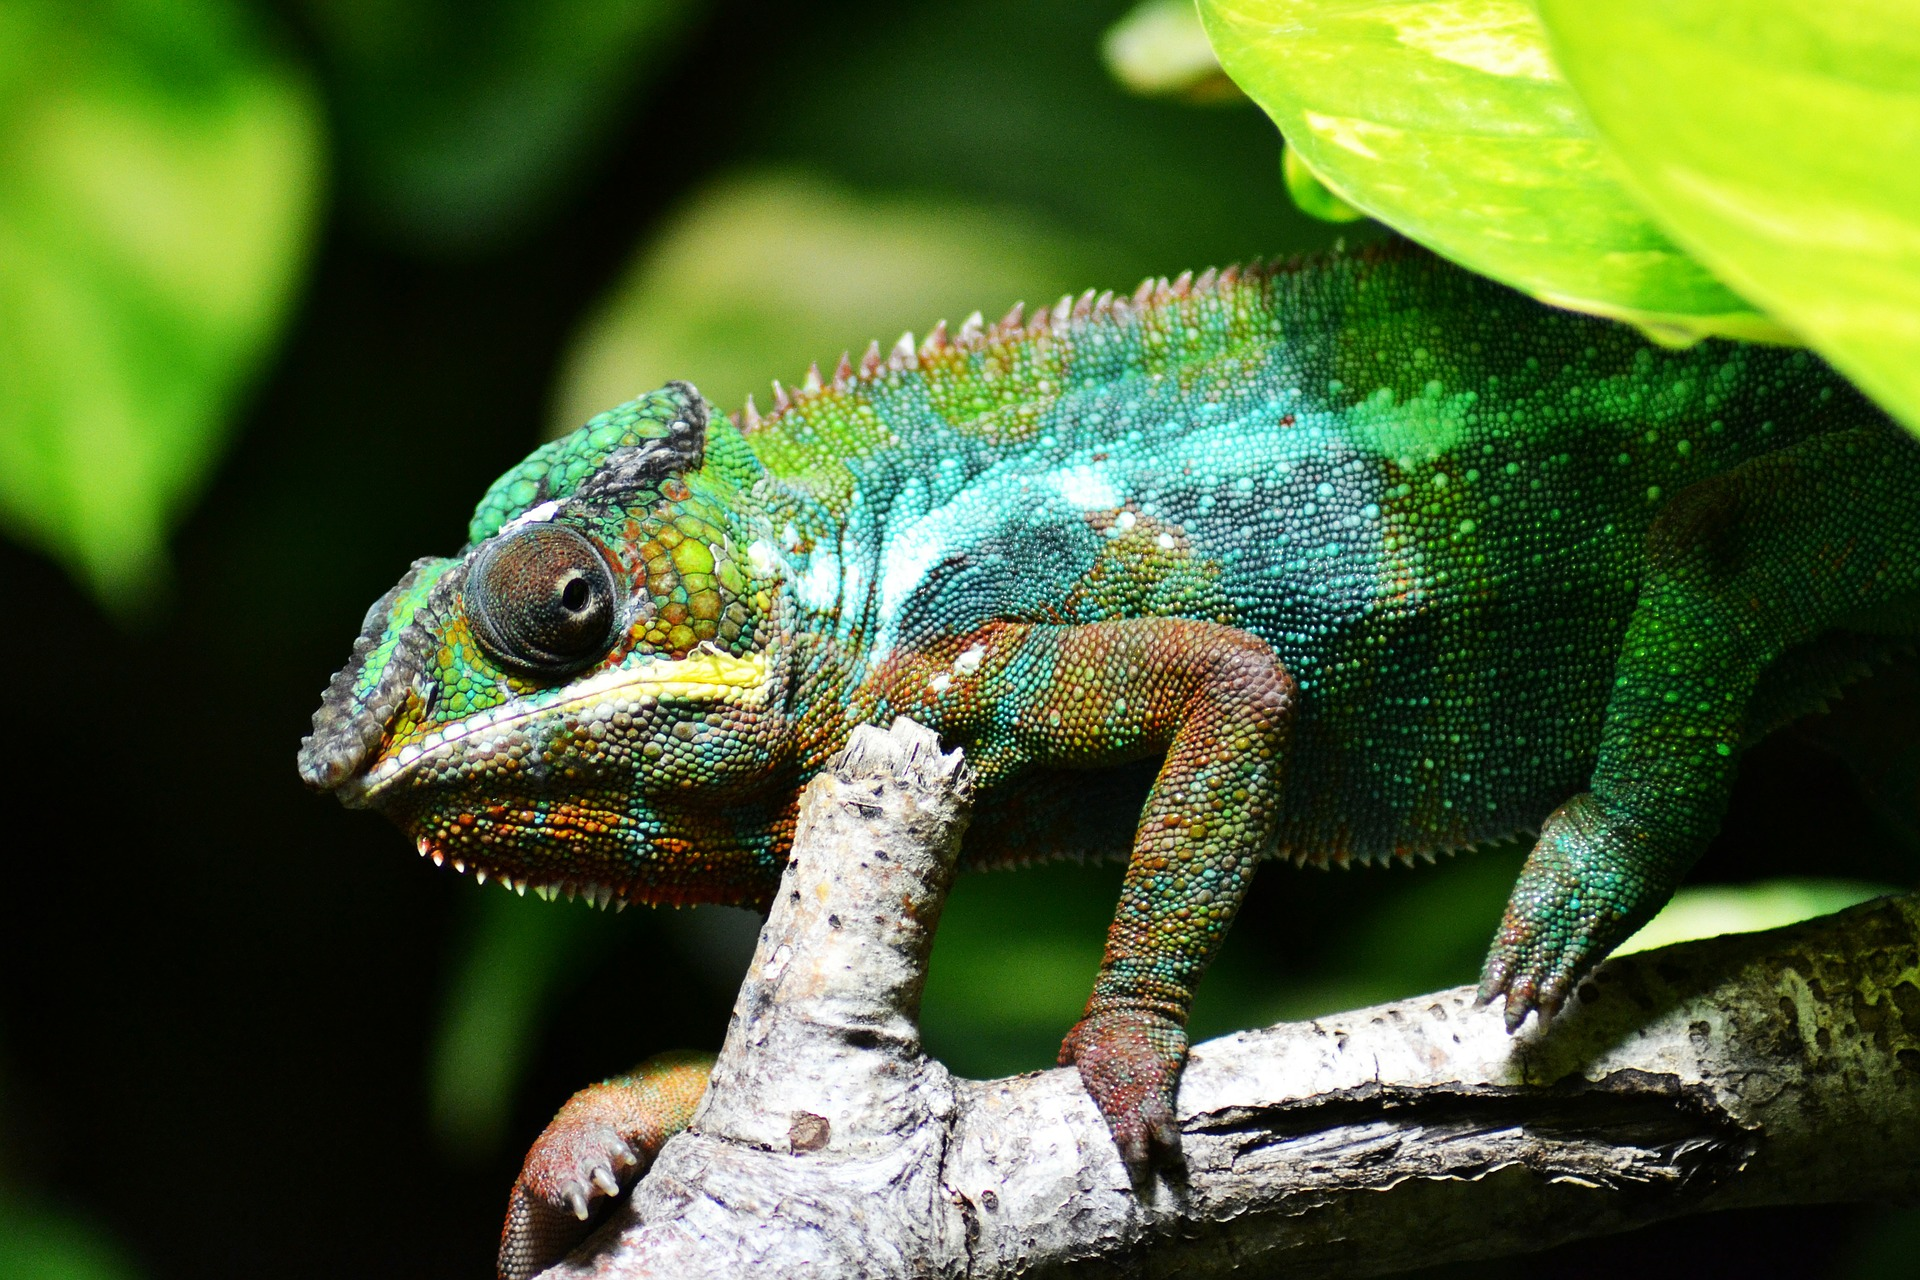 The Corporate Chameleon